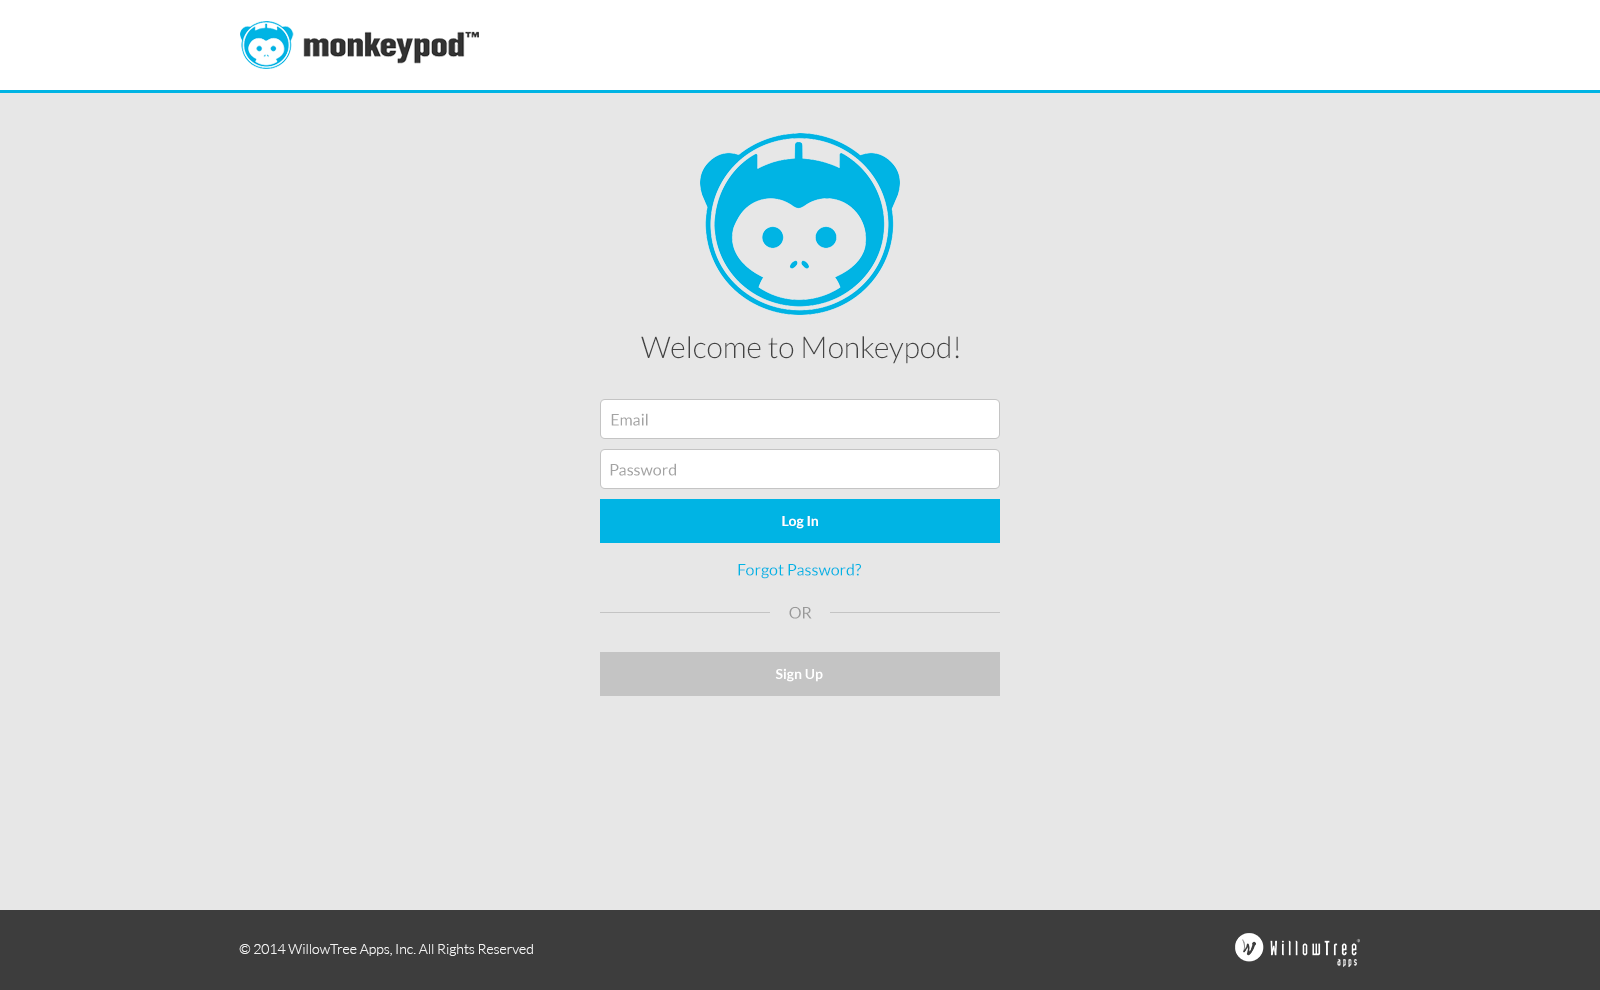 monkeypod-login